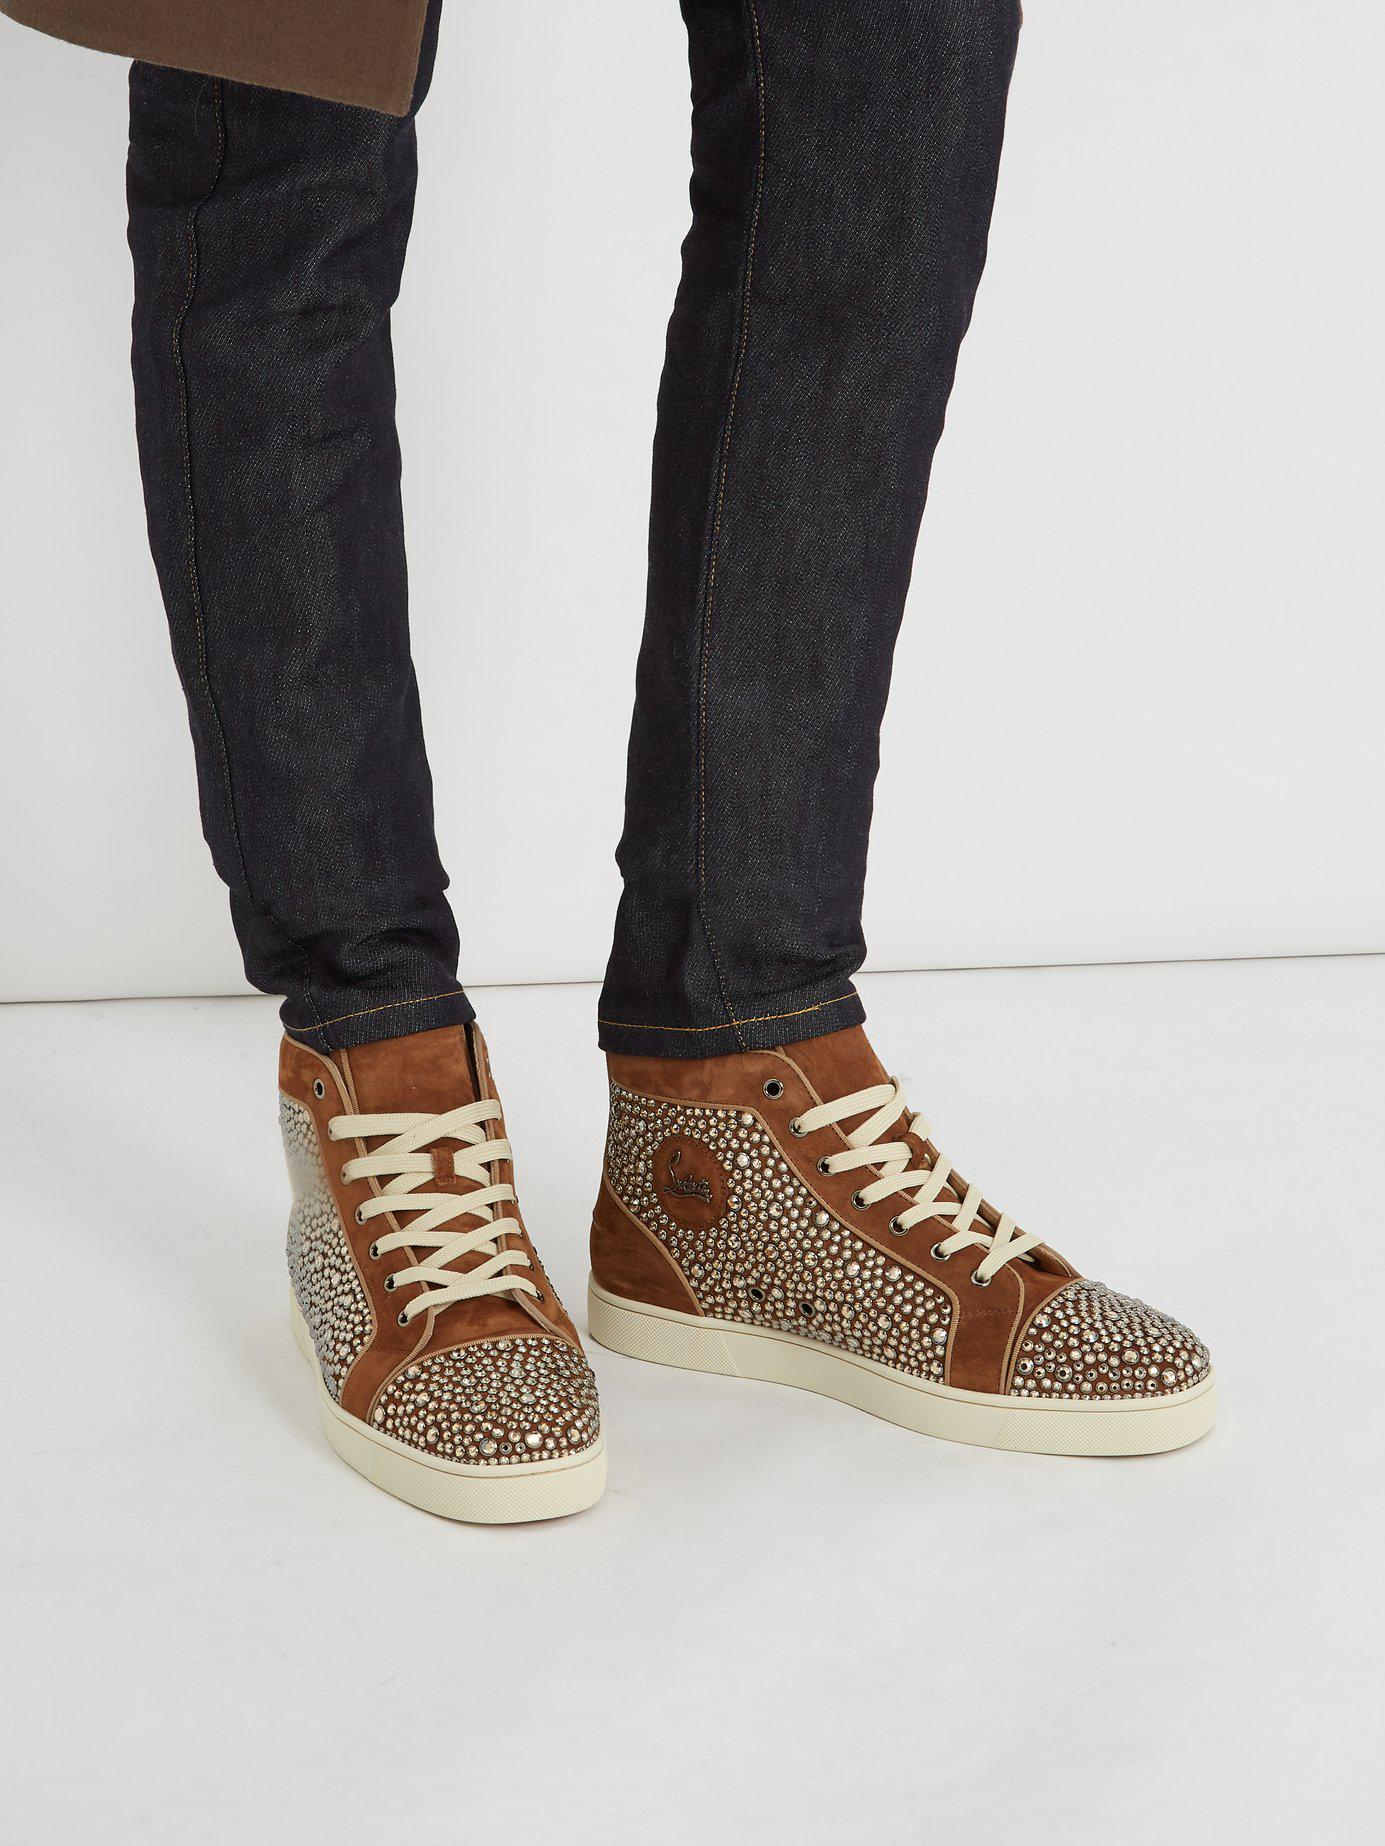 a252c251c19 Lyst - Christian Louboutin Louis Orlato High Top Leather Trainers in Brown  for Men - Save 76%